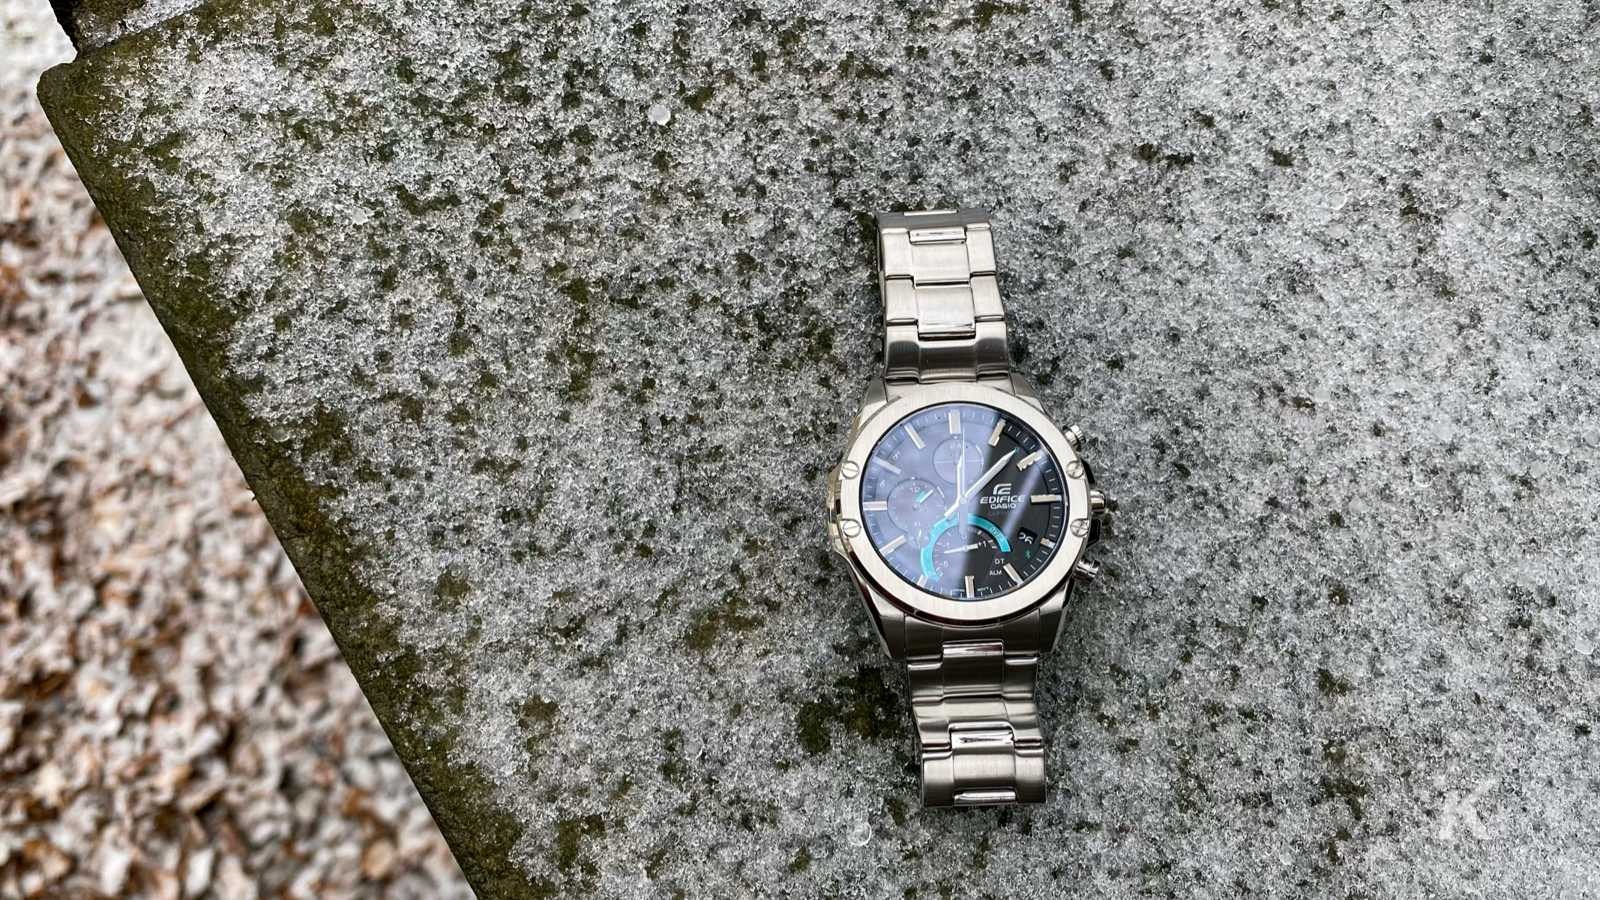 casio edifice eqb-1000d connected watch on snowy brick